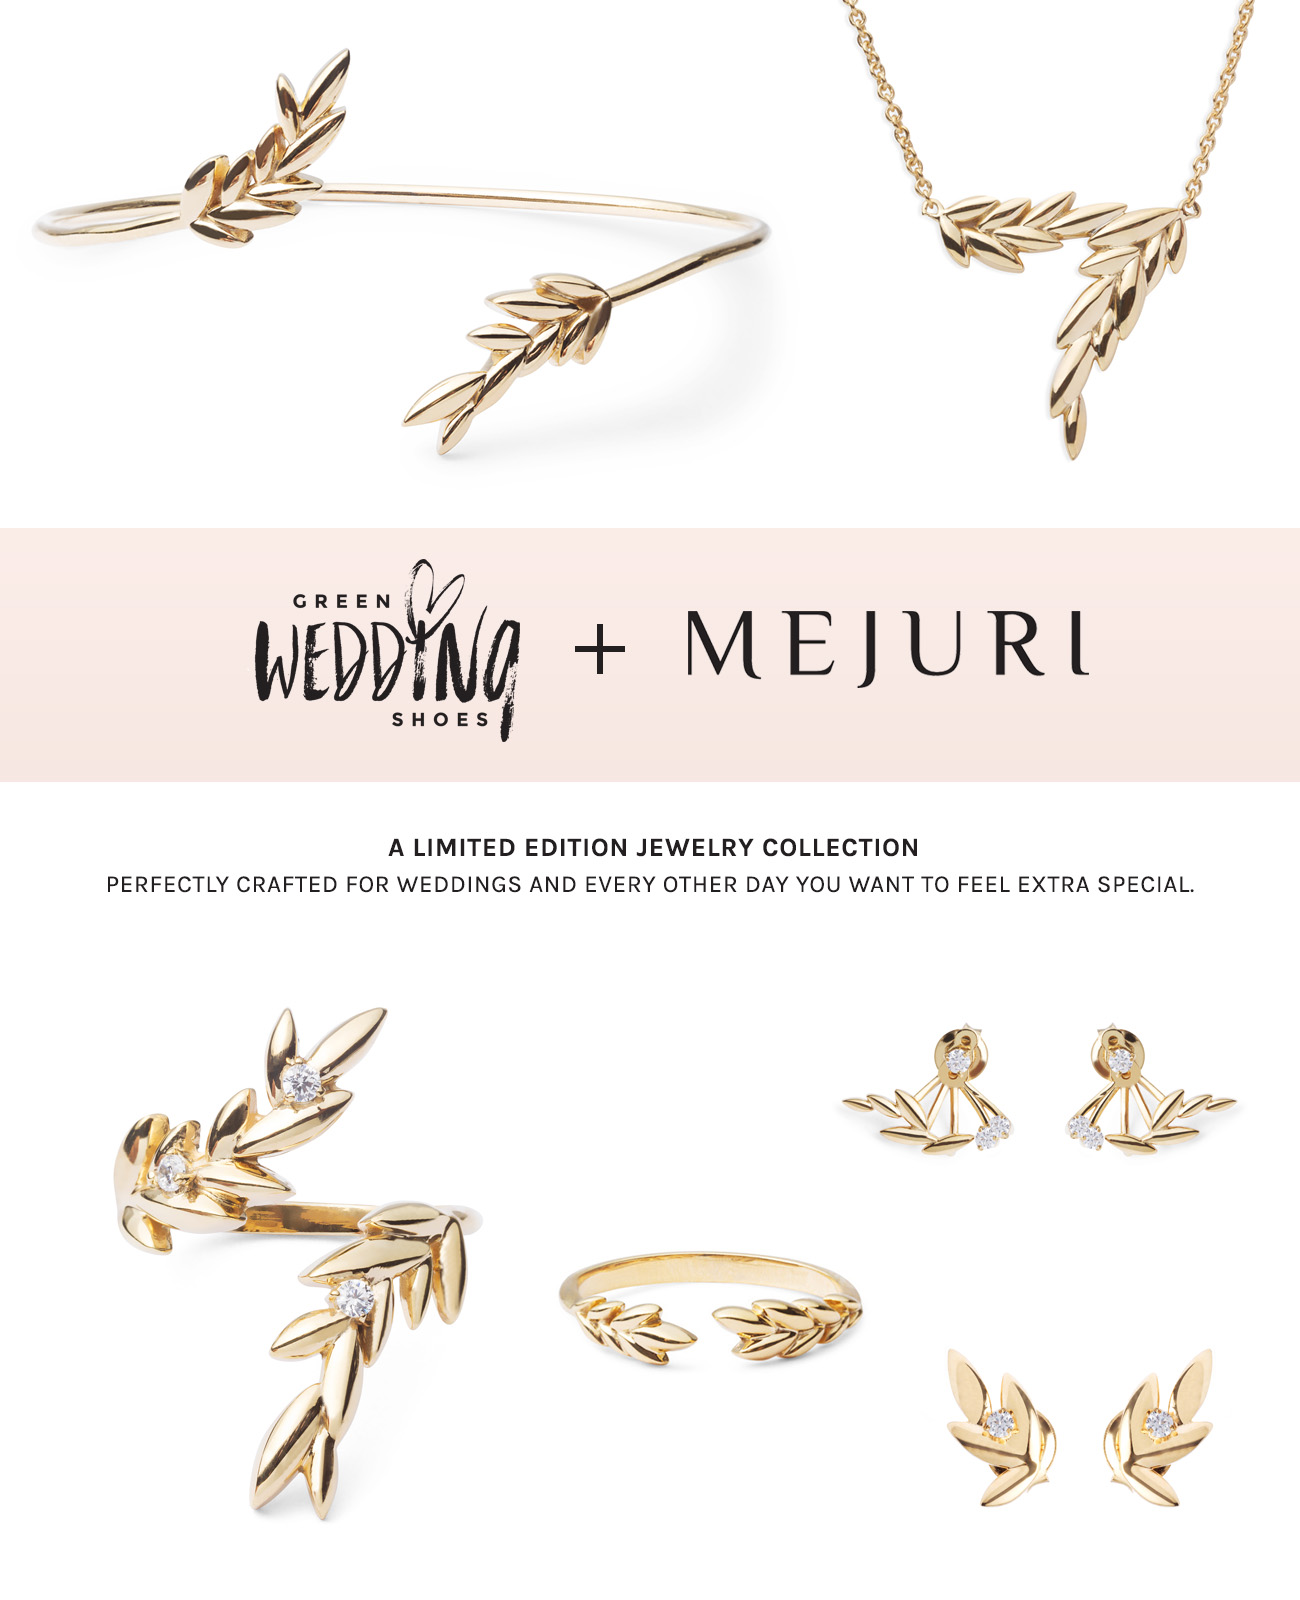 Green Wedding Shoes Jewelry collection with Mejuri